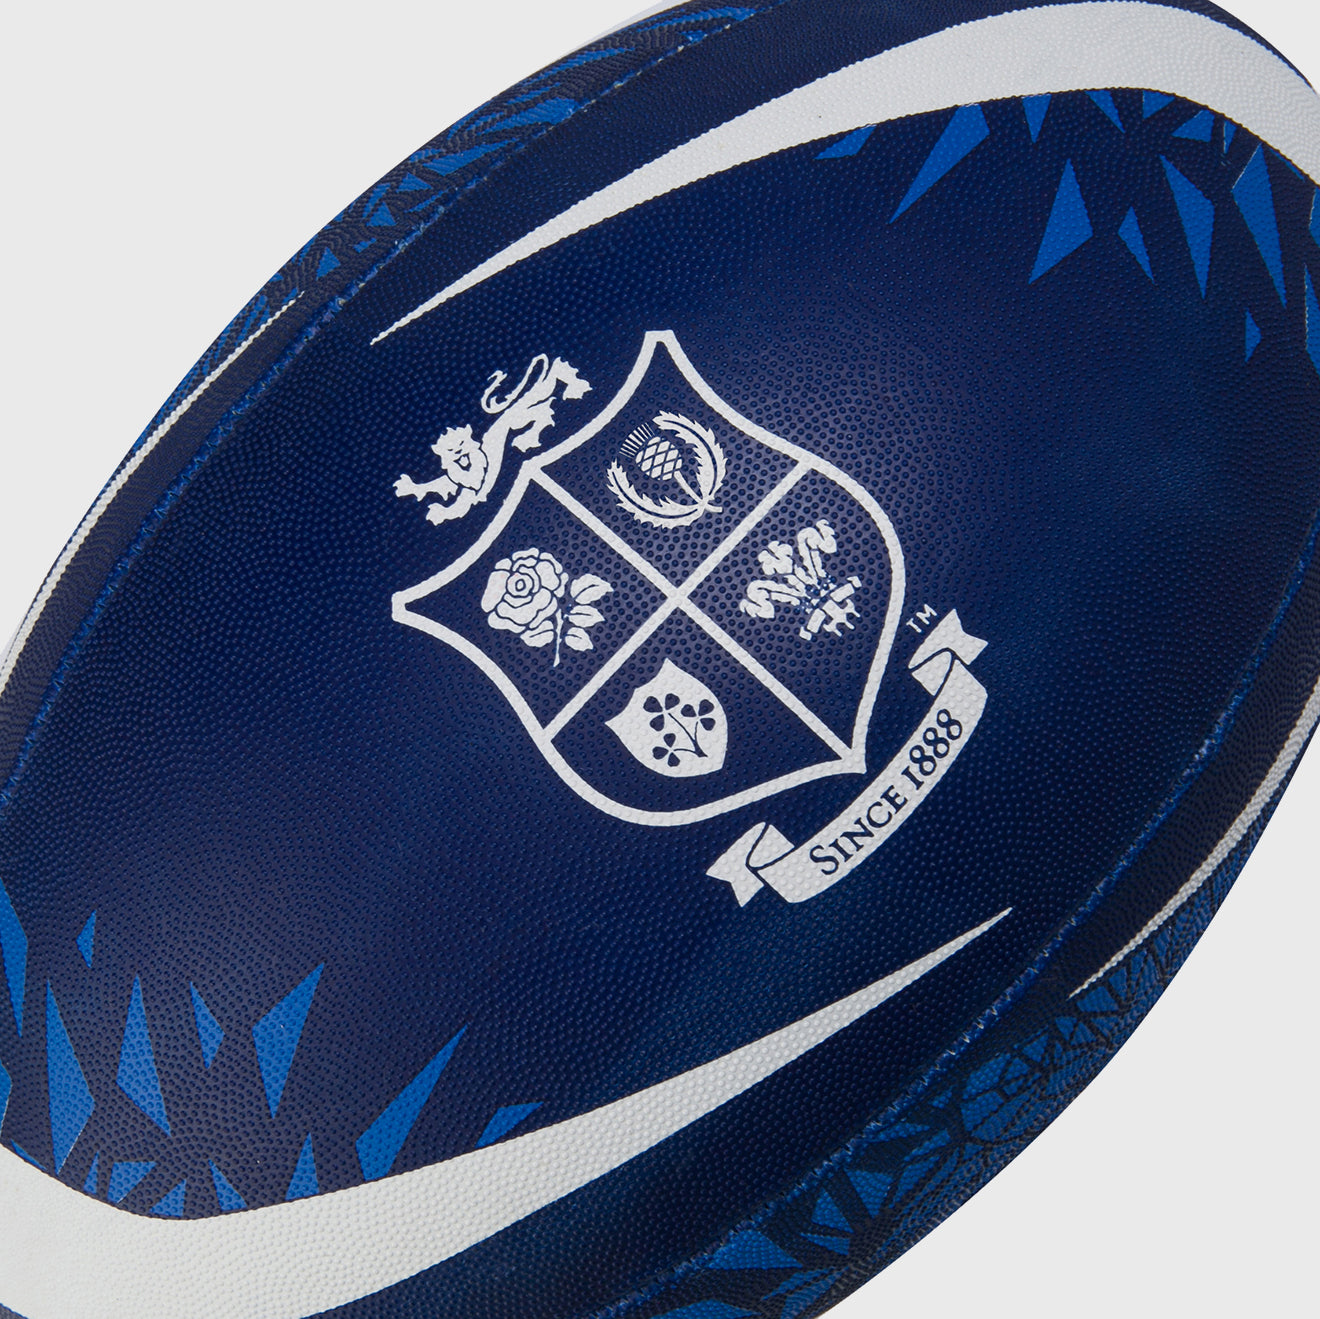 British & Irish Lions SA 2021 Thrillseeker Supporter Rugby Ball Navy